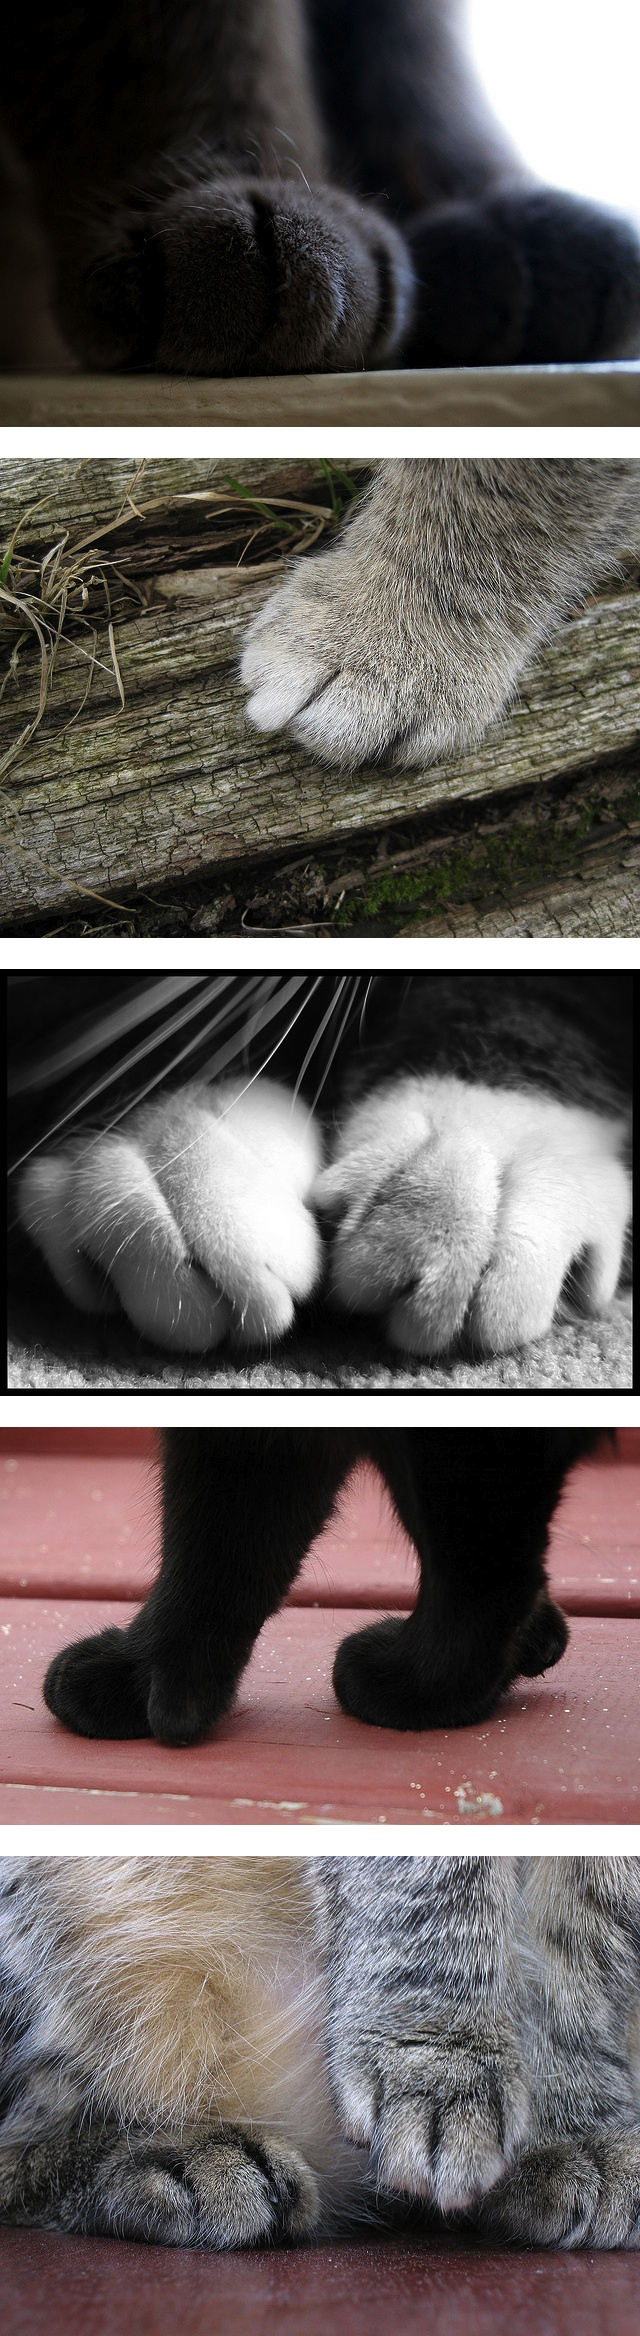 Velvety Paws! Lots of them! The best bit of the kitty, the